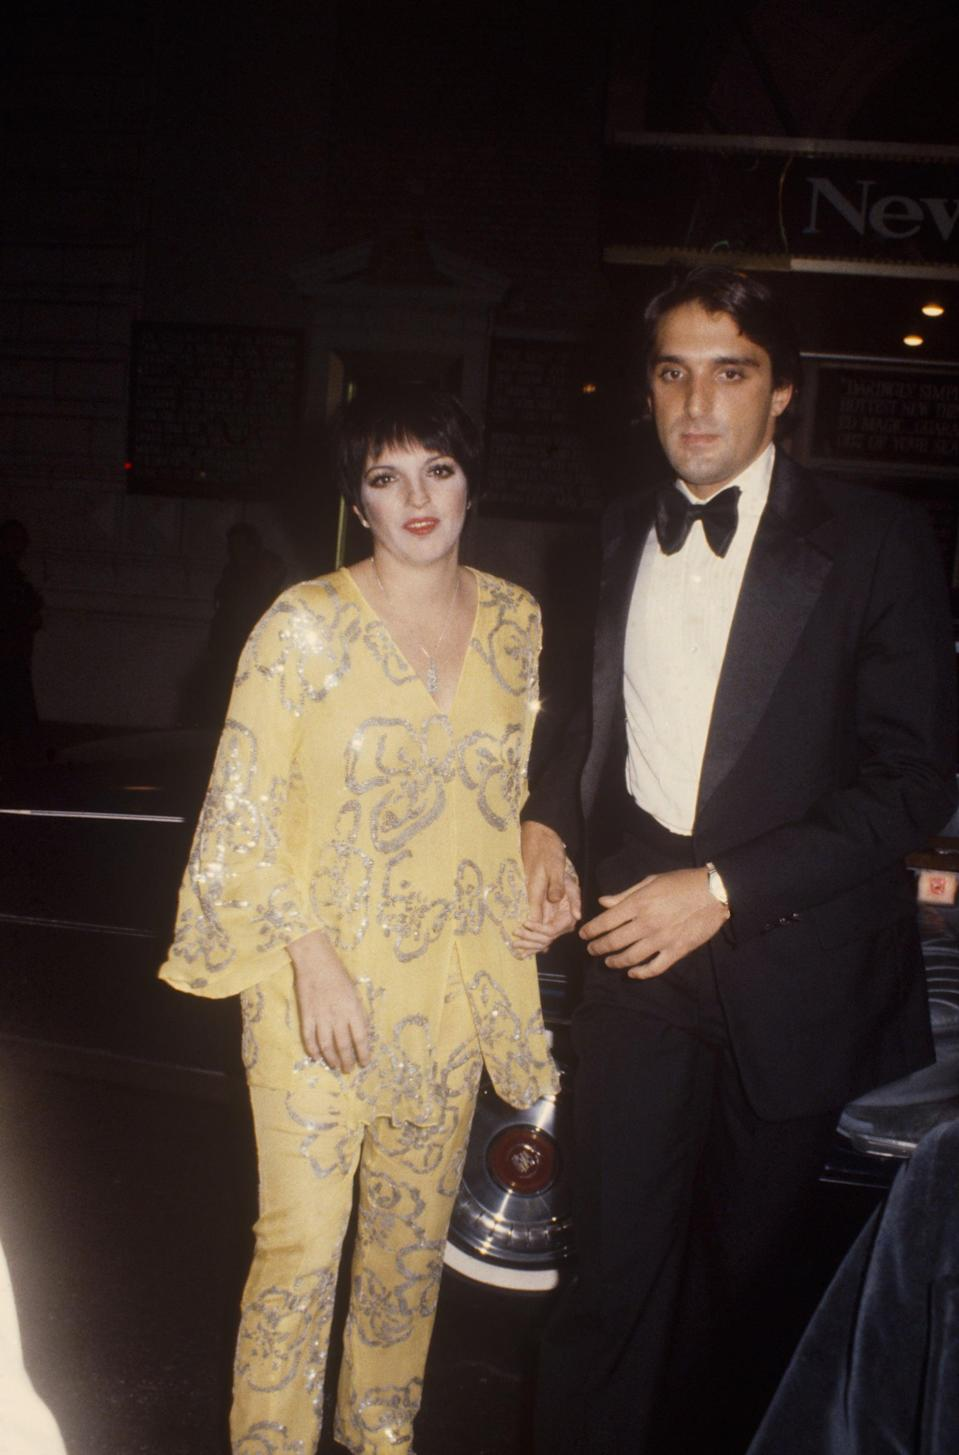 """<p>Minnelli married Mark Gero, a sculptor and theater producer, in 1979. The couple planned to have children, but Minnelli <a href=""""http://www.theguardian.com/music/2008/may/04/popandrock"""" class=""""link rapid-noclick-resp"""" rel=""""nofollow noopener"""" target=""""_blank"""" data-ylk=""""slk:experienced three pregnancy losses"""">experienced three pregnancy losses</a>. In divorce papers filed in November 1990, she <a href=""""https://www.tampabay.com/archive/1992/01/30/liza-minnelli-divorces/"""" class=""""link rapid-noclick-resp"""" rel=""""nofollow noopener"""" target=""""_blank"""" data-ylk=""""slk:charged Gero with abandonment"""">charged Gero with abandonment</a>. </p>"""